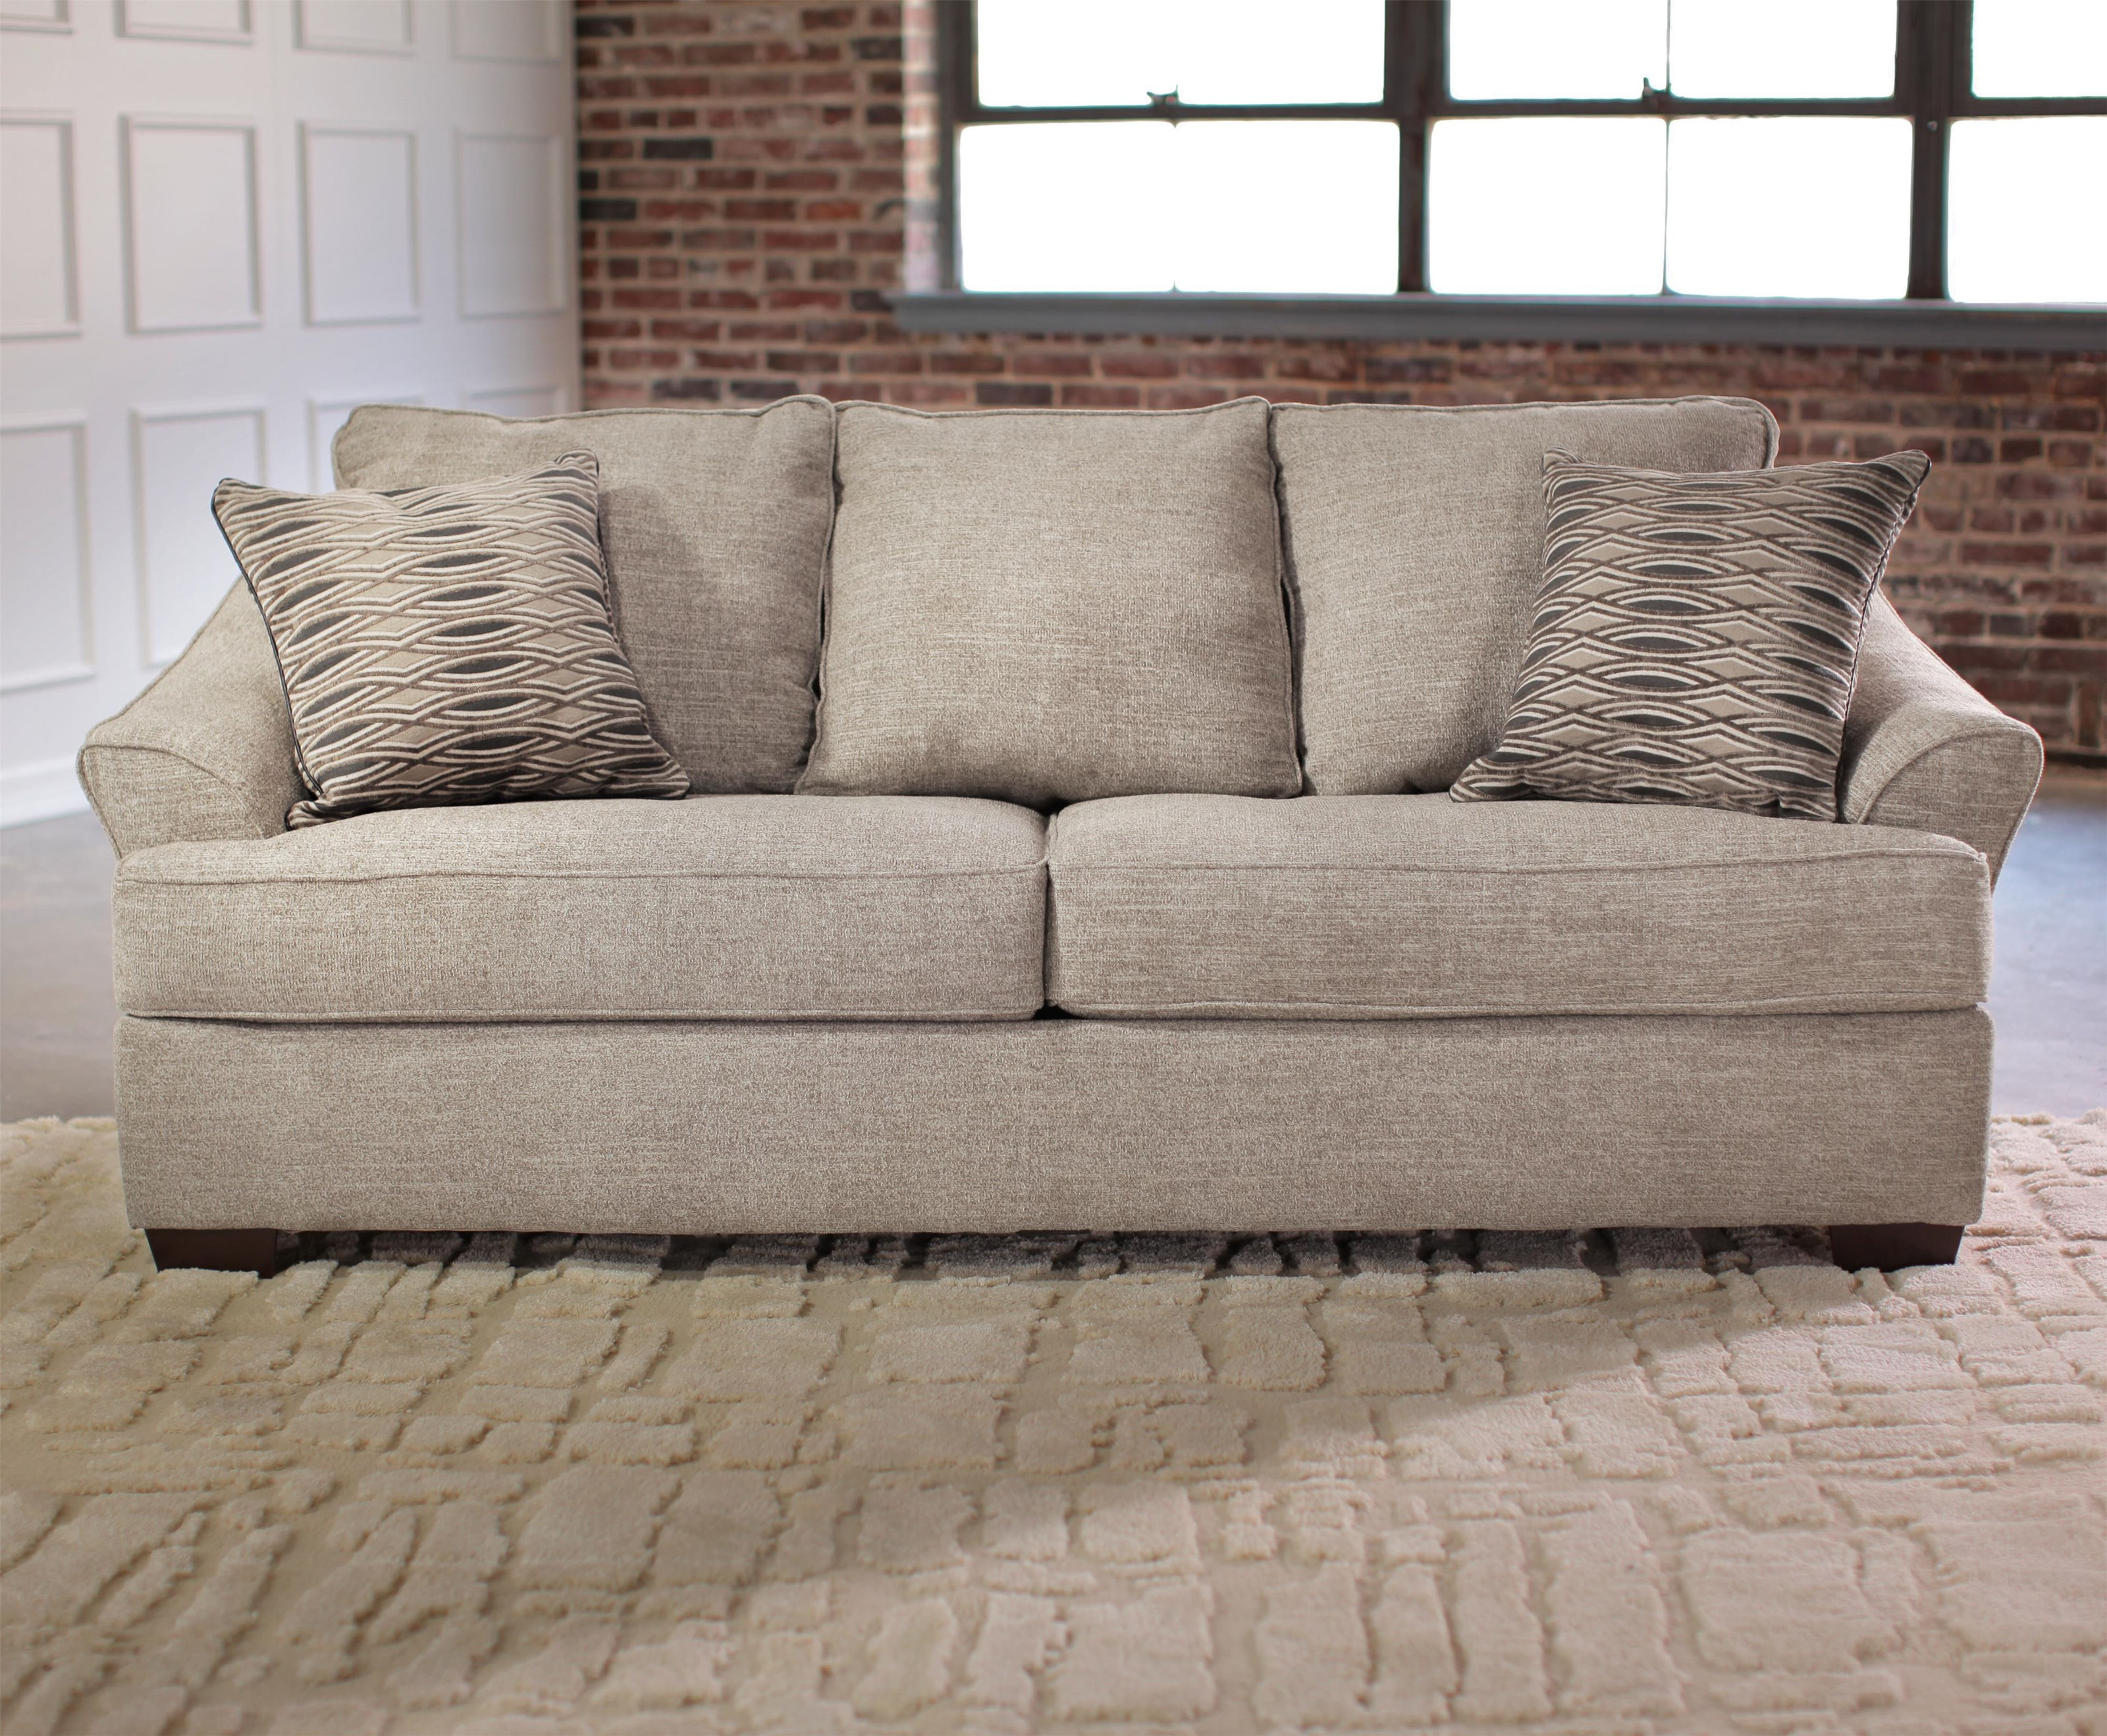 Simmons Upholstery 6520 Queen Sleeper Sofa Royal Furniture